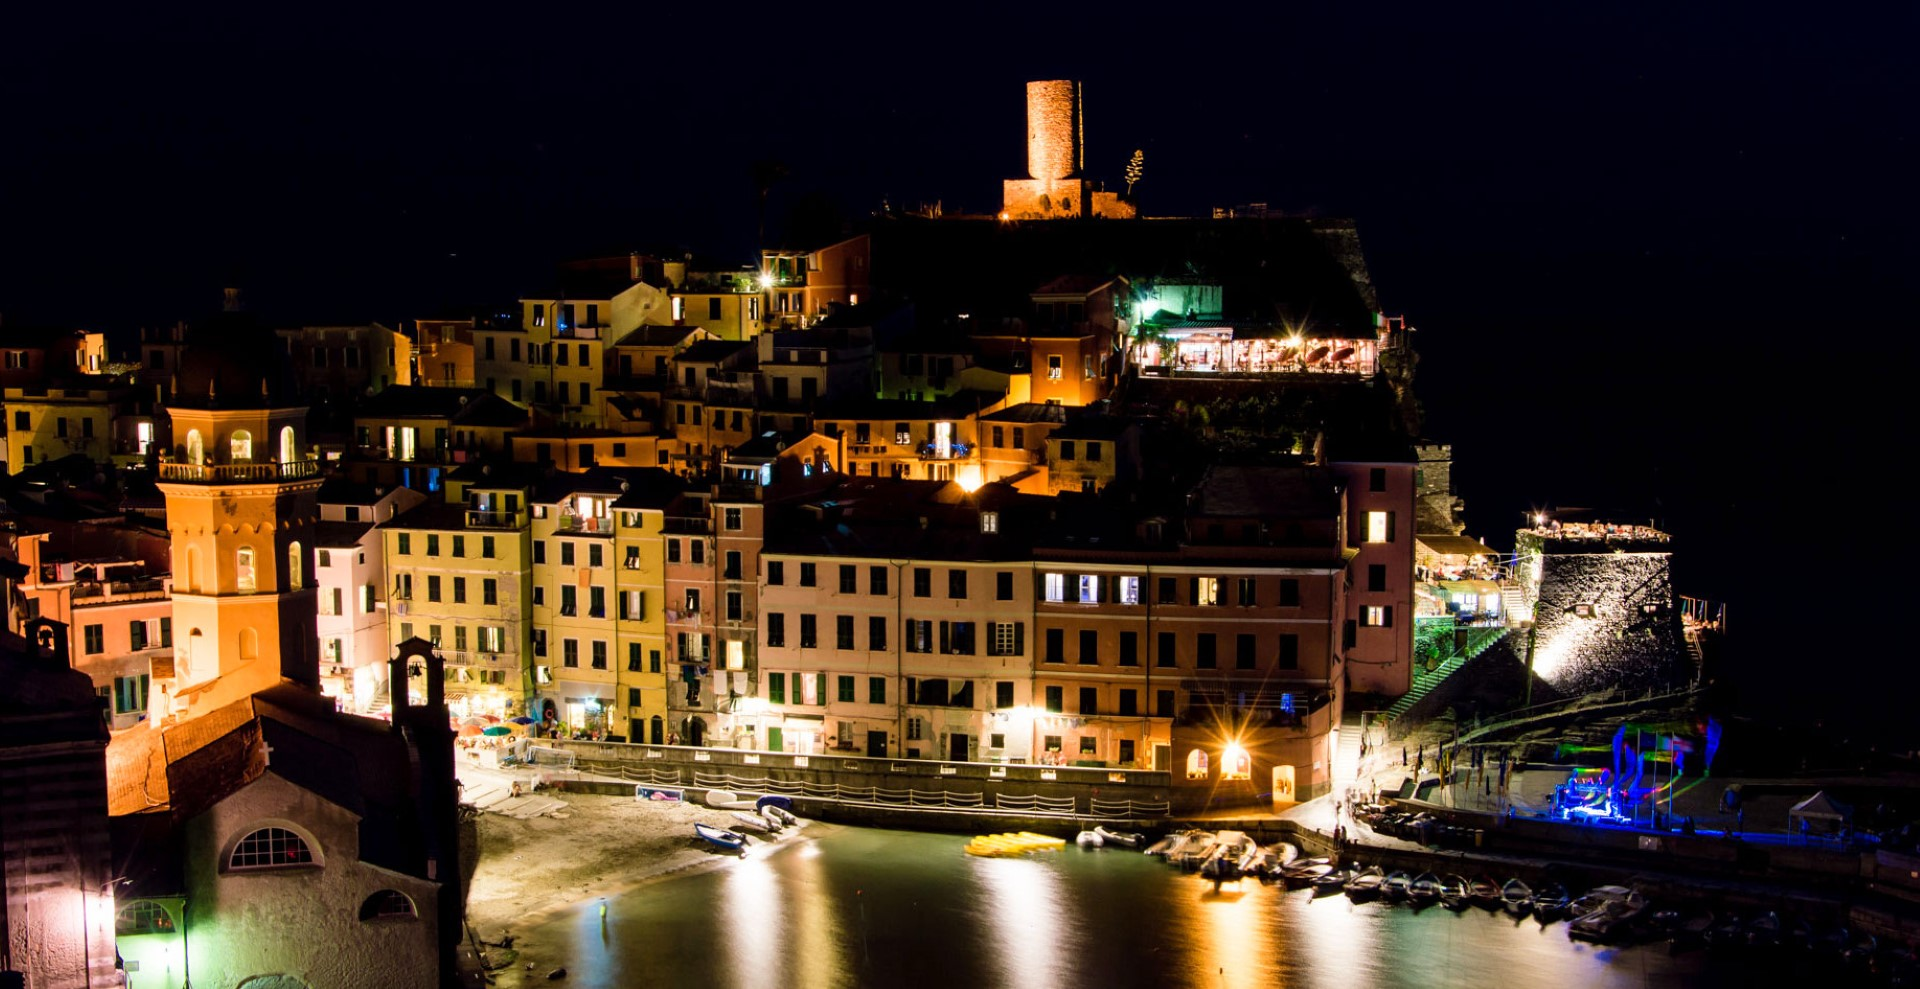 vernazza_notte_hd_Large.jpg